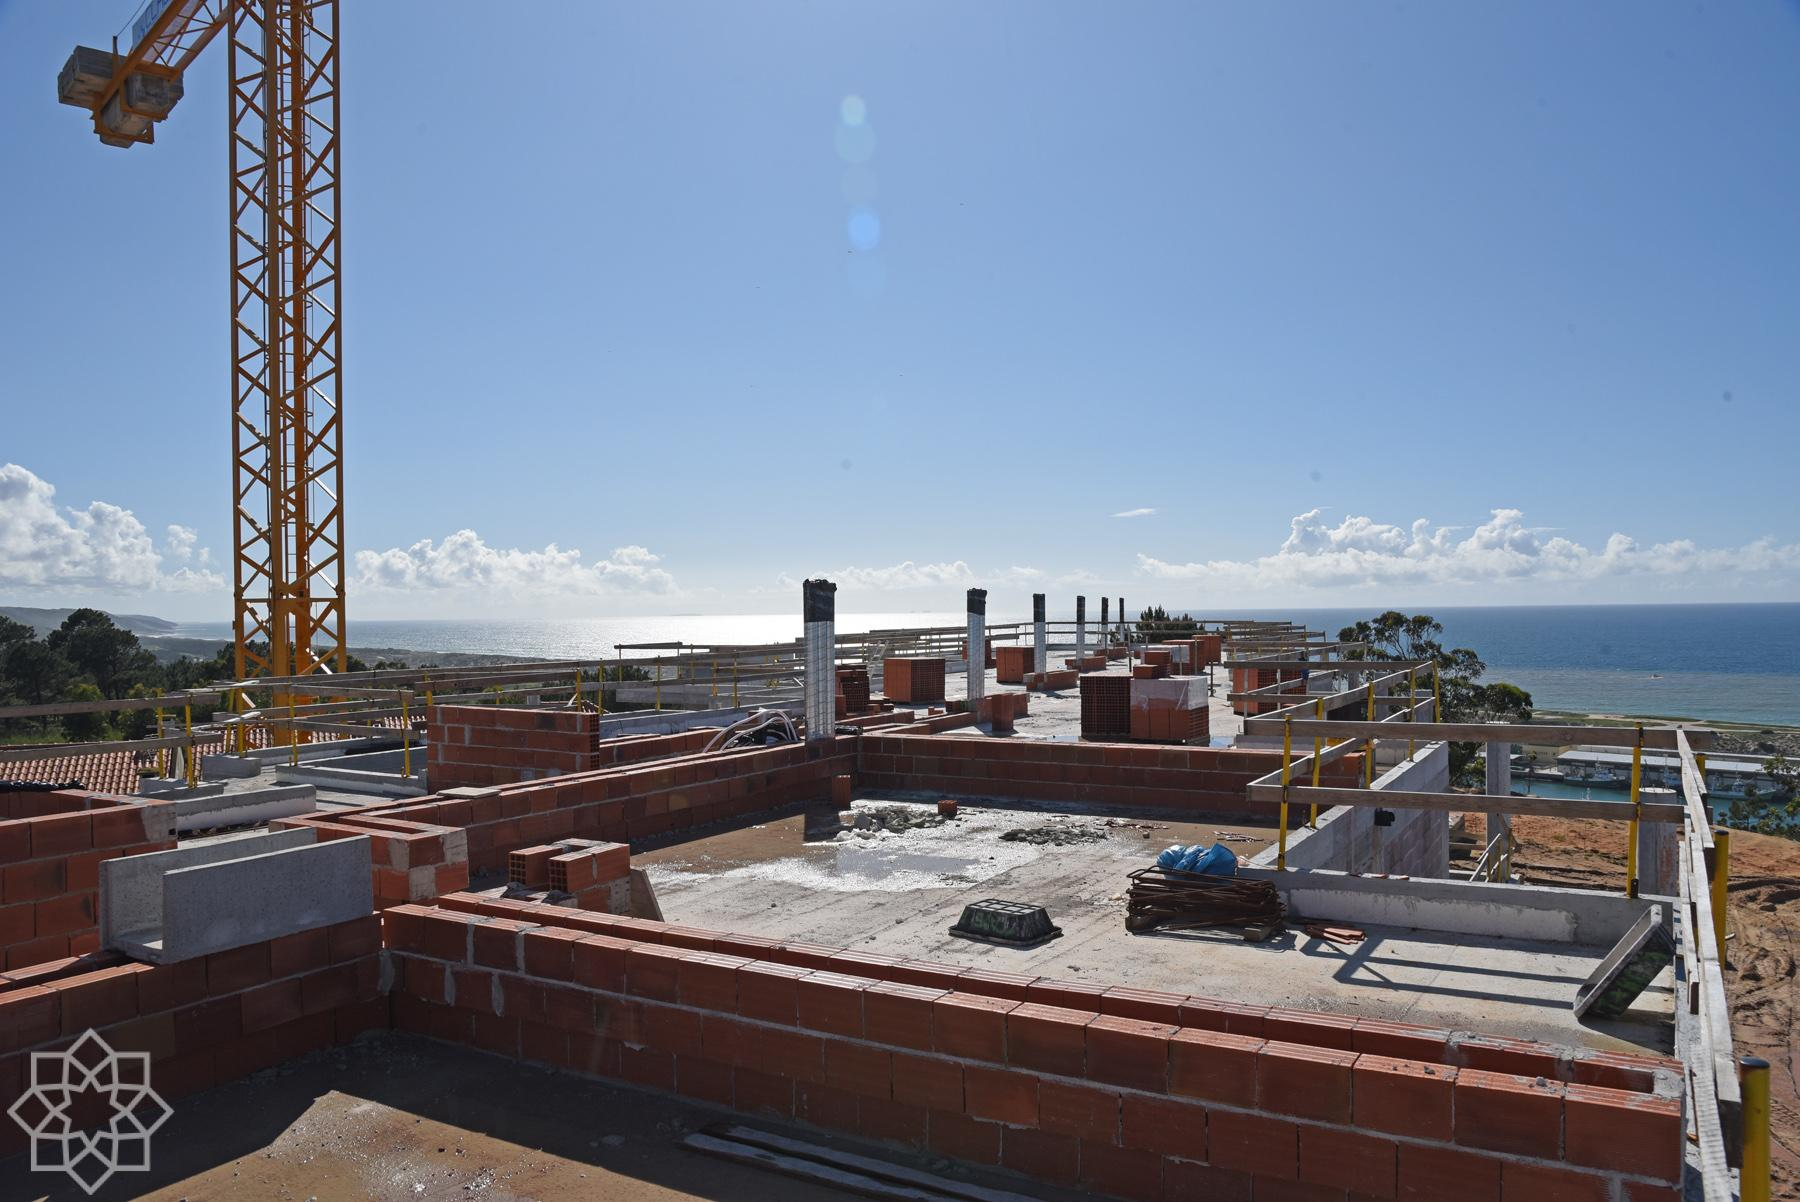 Private roof top terraces for the apartments on the 2nd floor